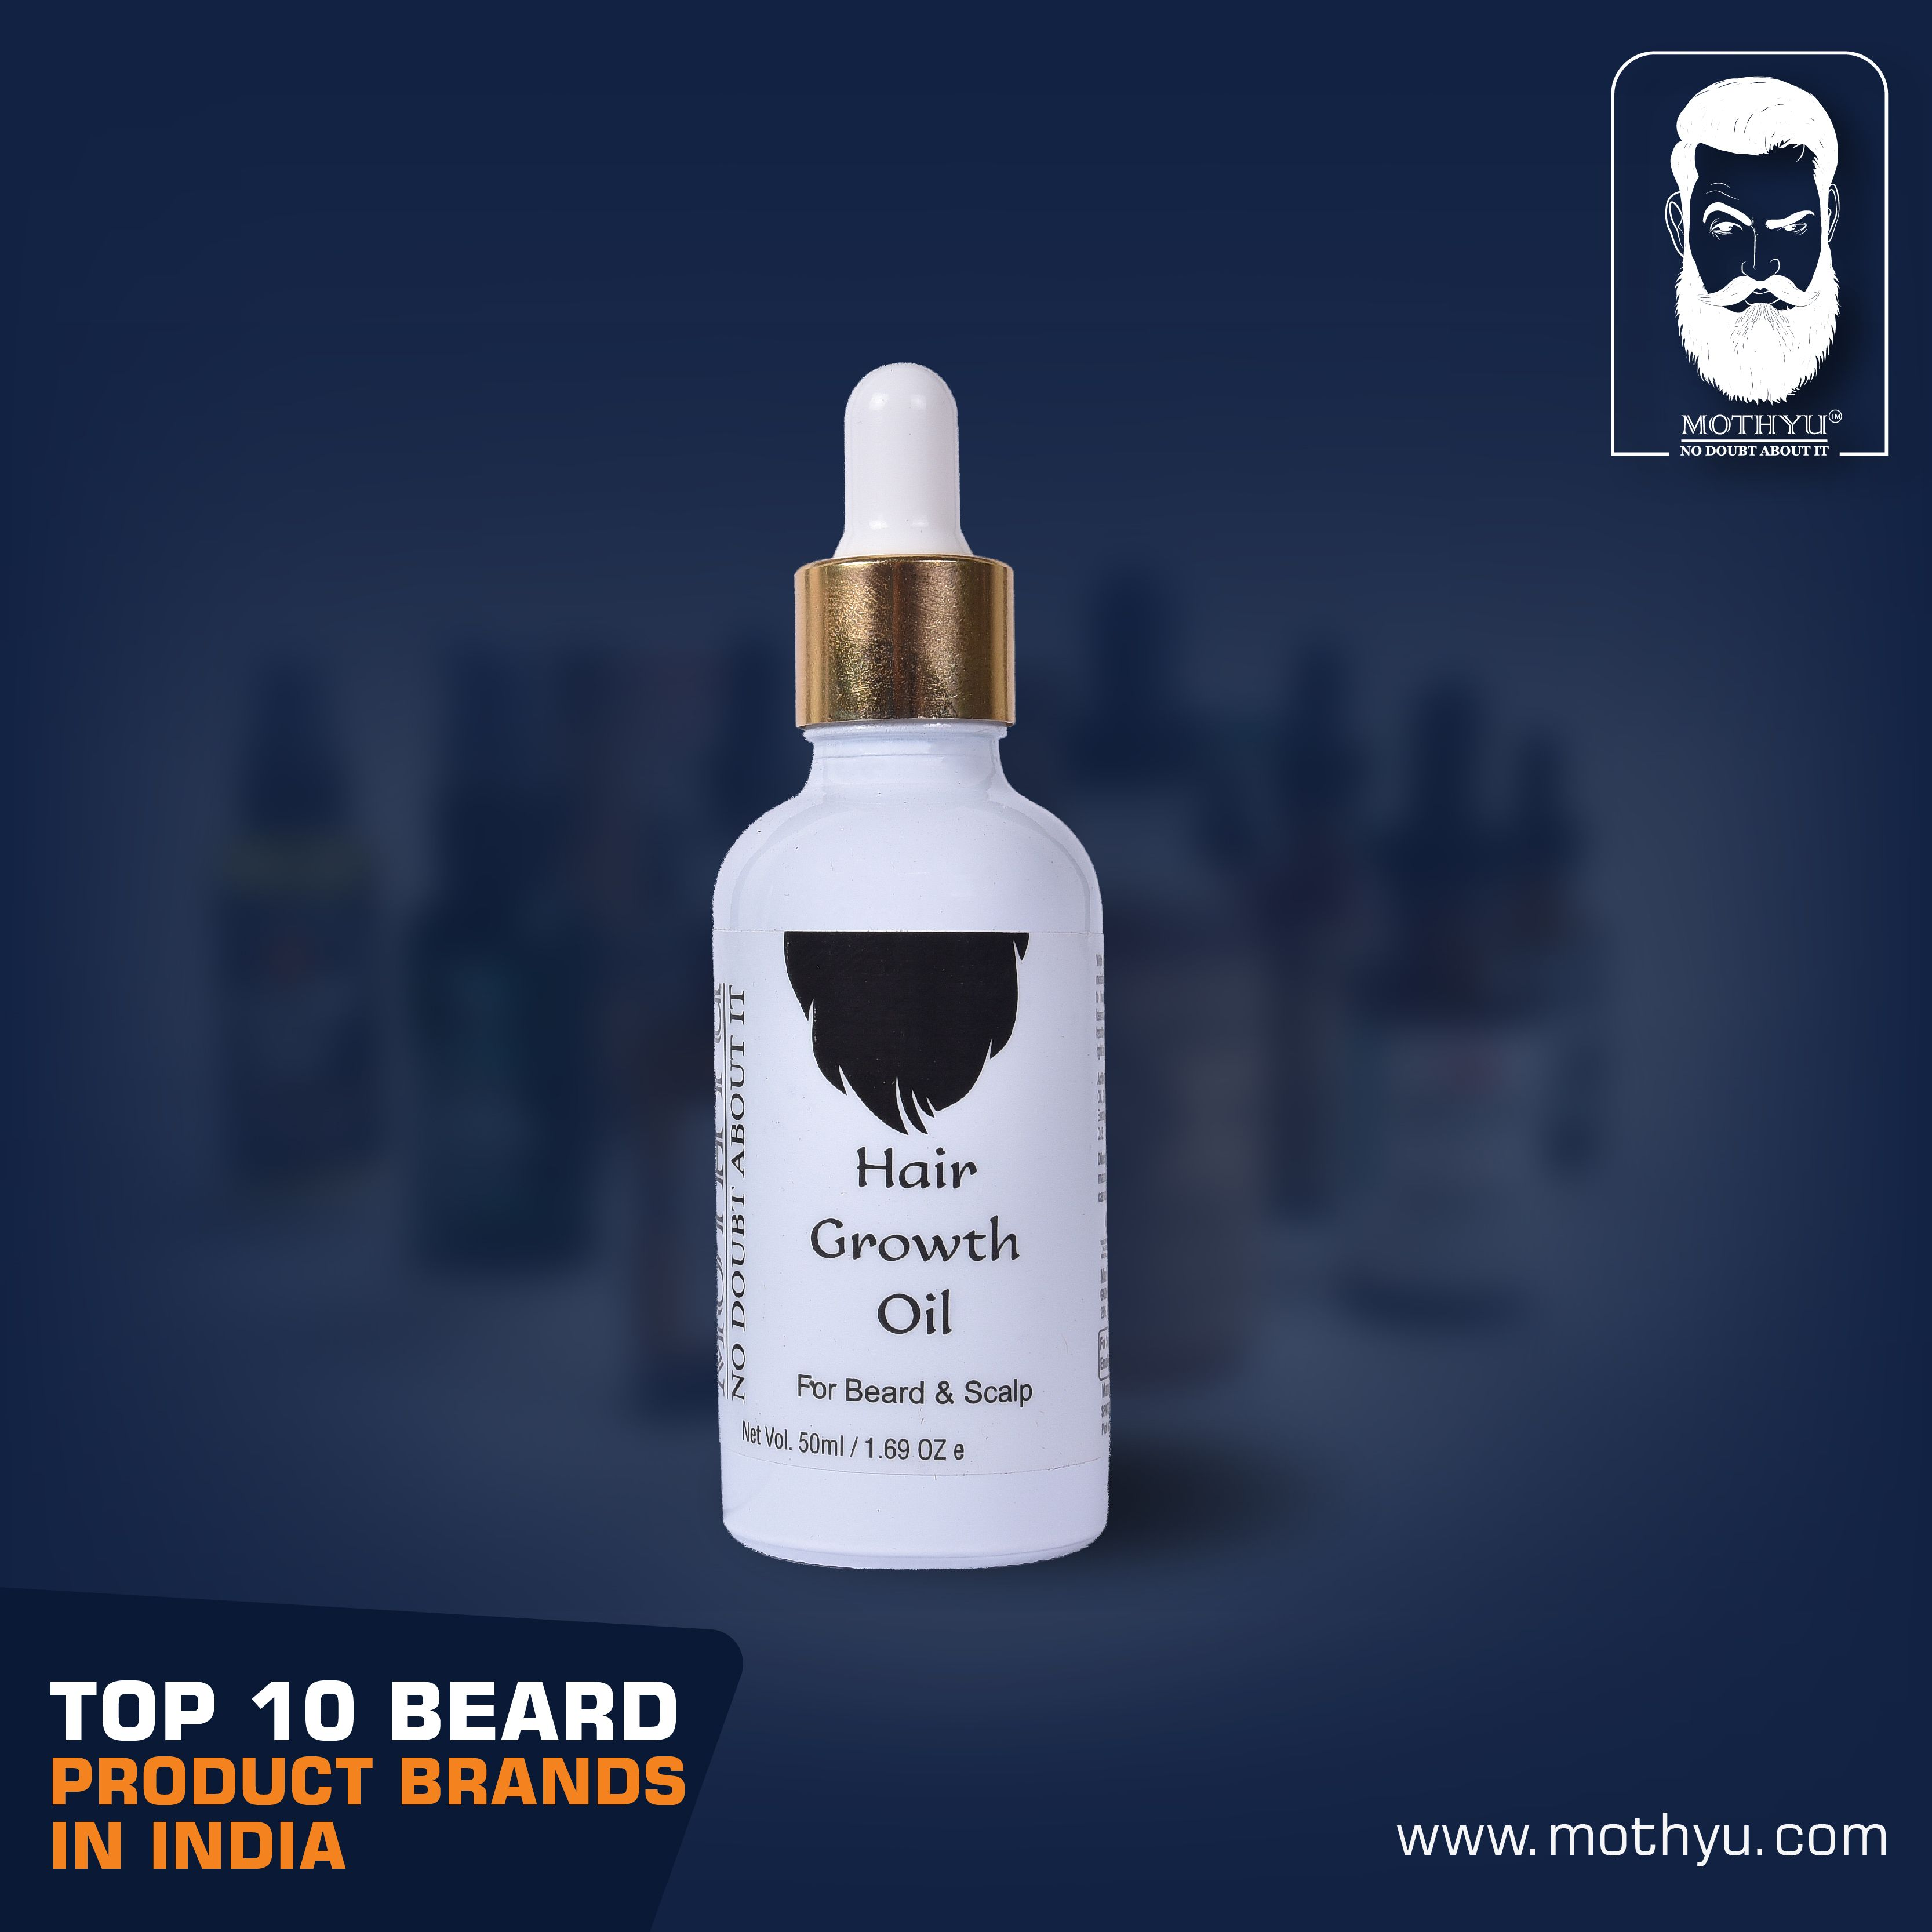 Beard products are great to keep a soft and shiny beard  To